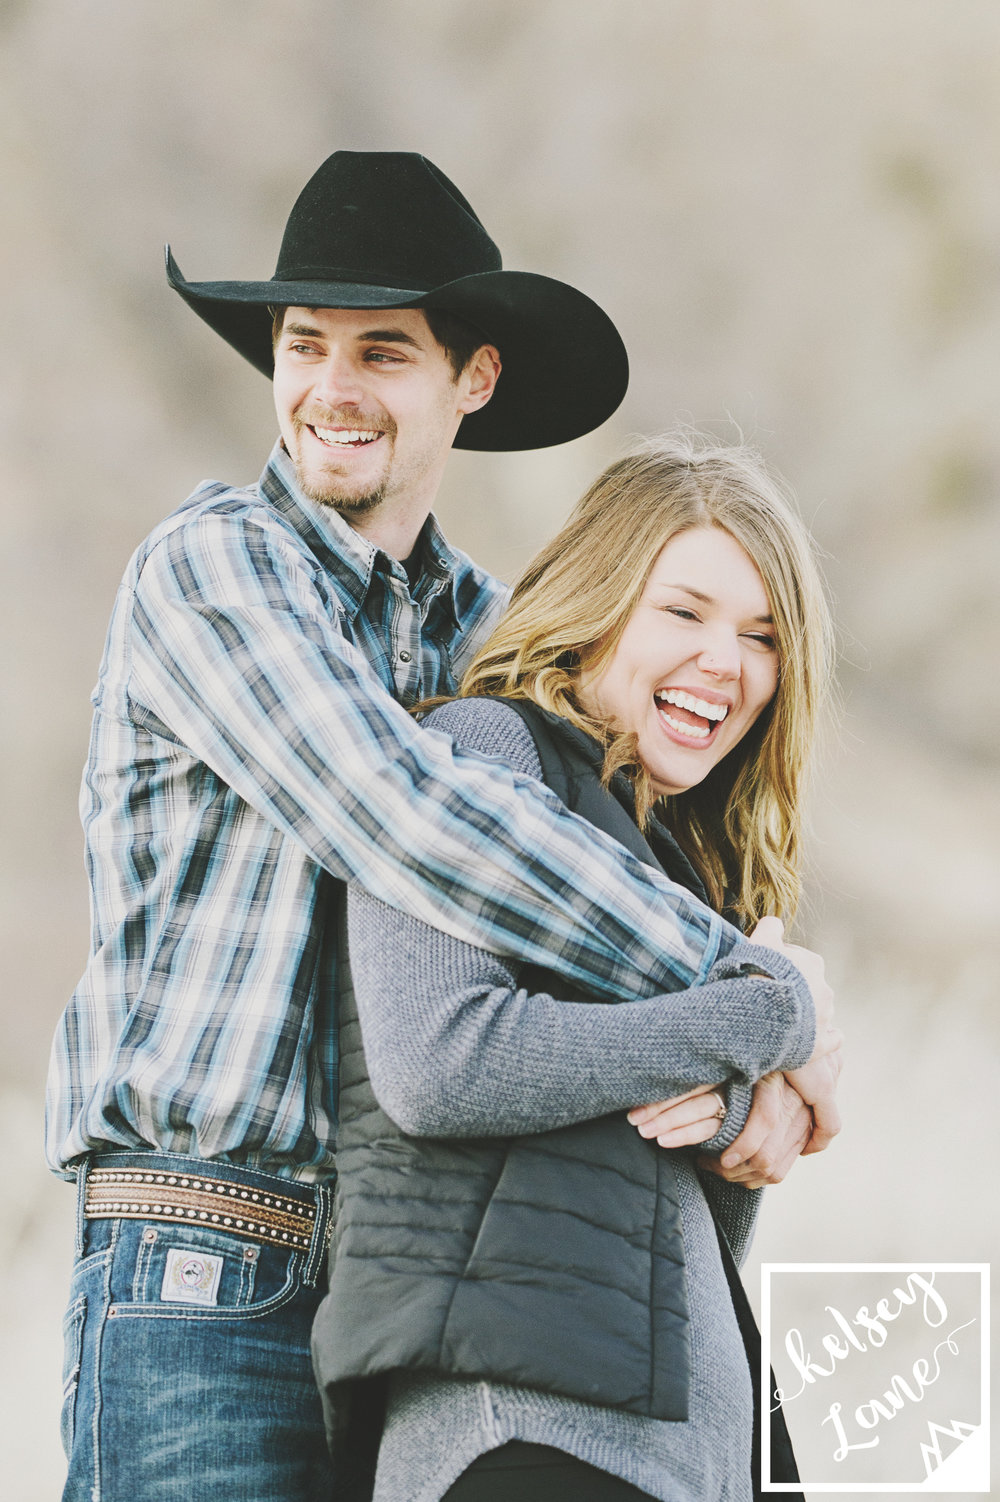 049 Montana River Engagement_Montana Wedding Photographer_Montana Engagement_Helena Engagement_Kelsey Lane Photography_Katlyn Kenyon + Jade Nystrom Engagement-0894.jpg